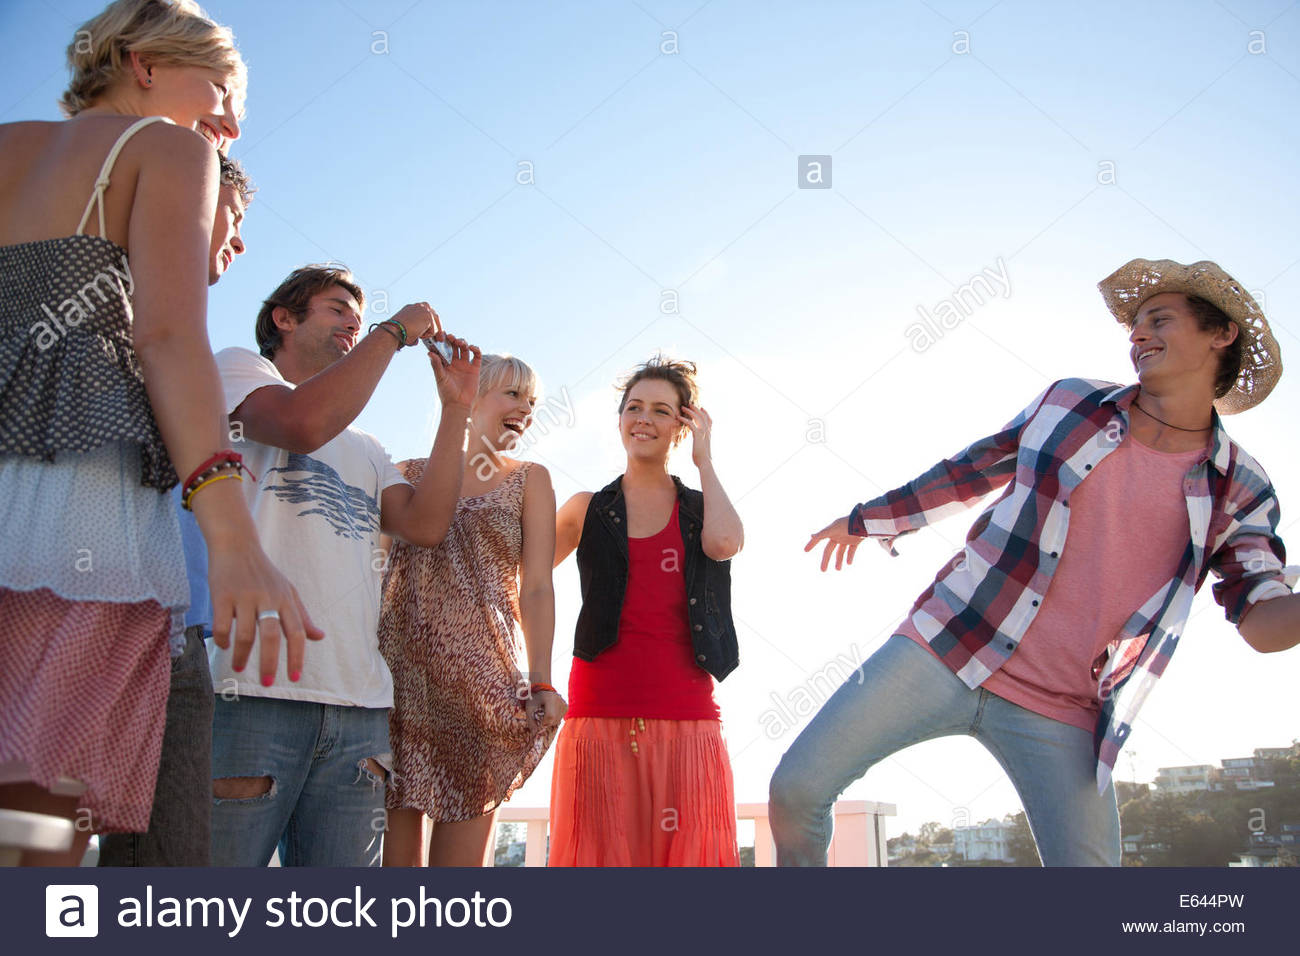 Man with digital camera taking photograph of friends - Stock Image